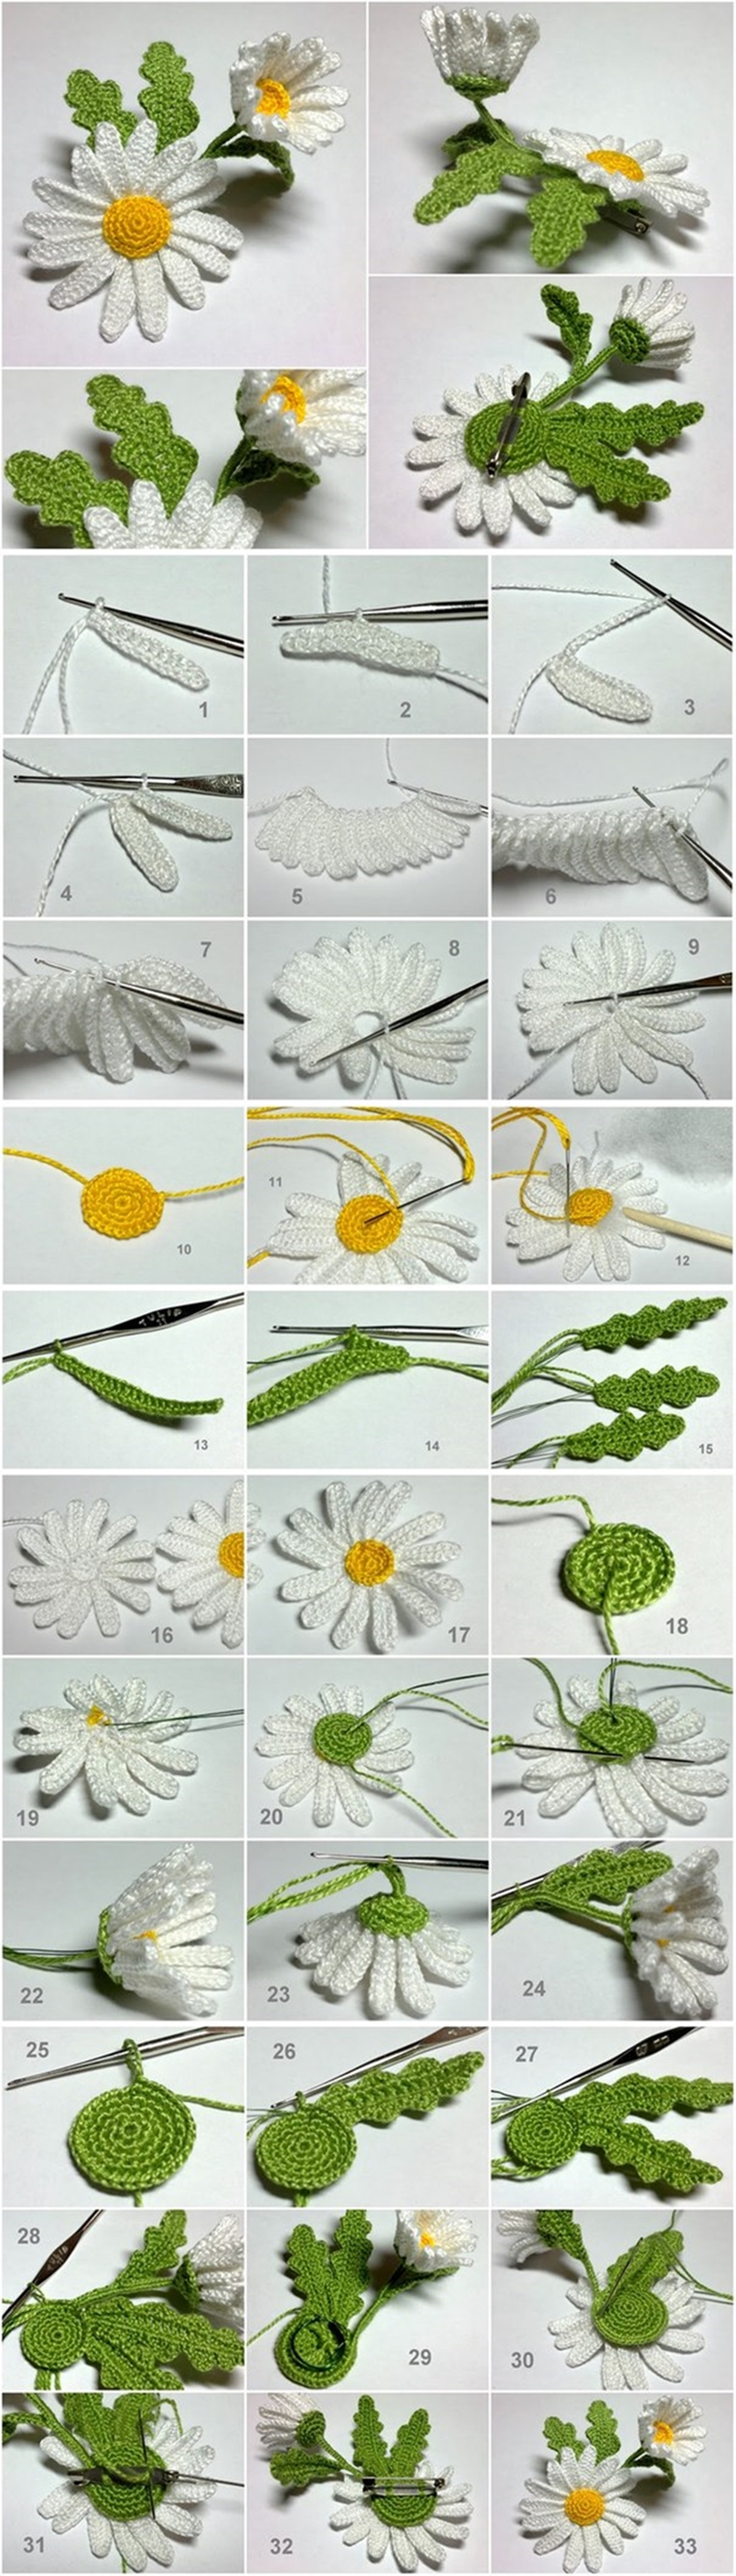 crochet 3D daisy M Wonderful DIY Crochet 3D Daisy Flower